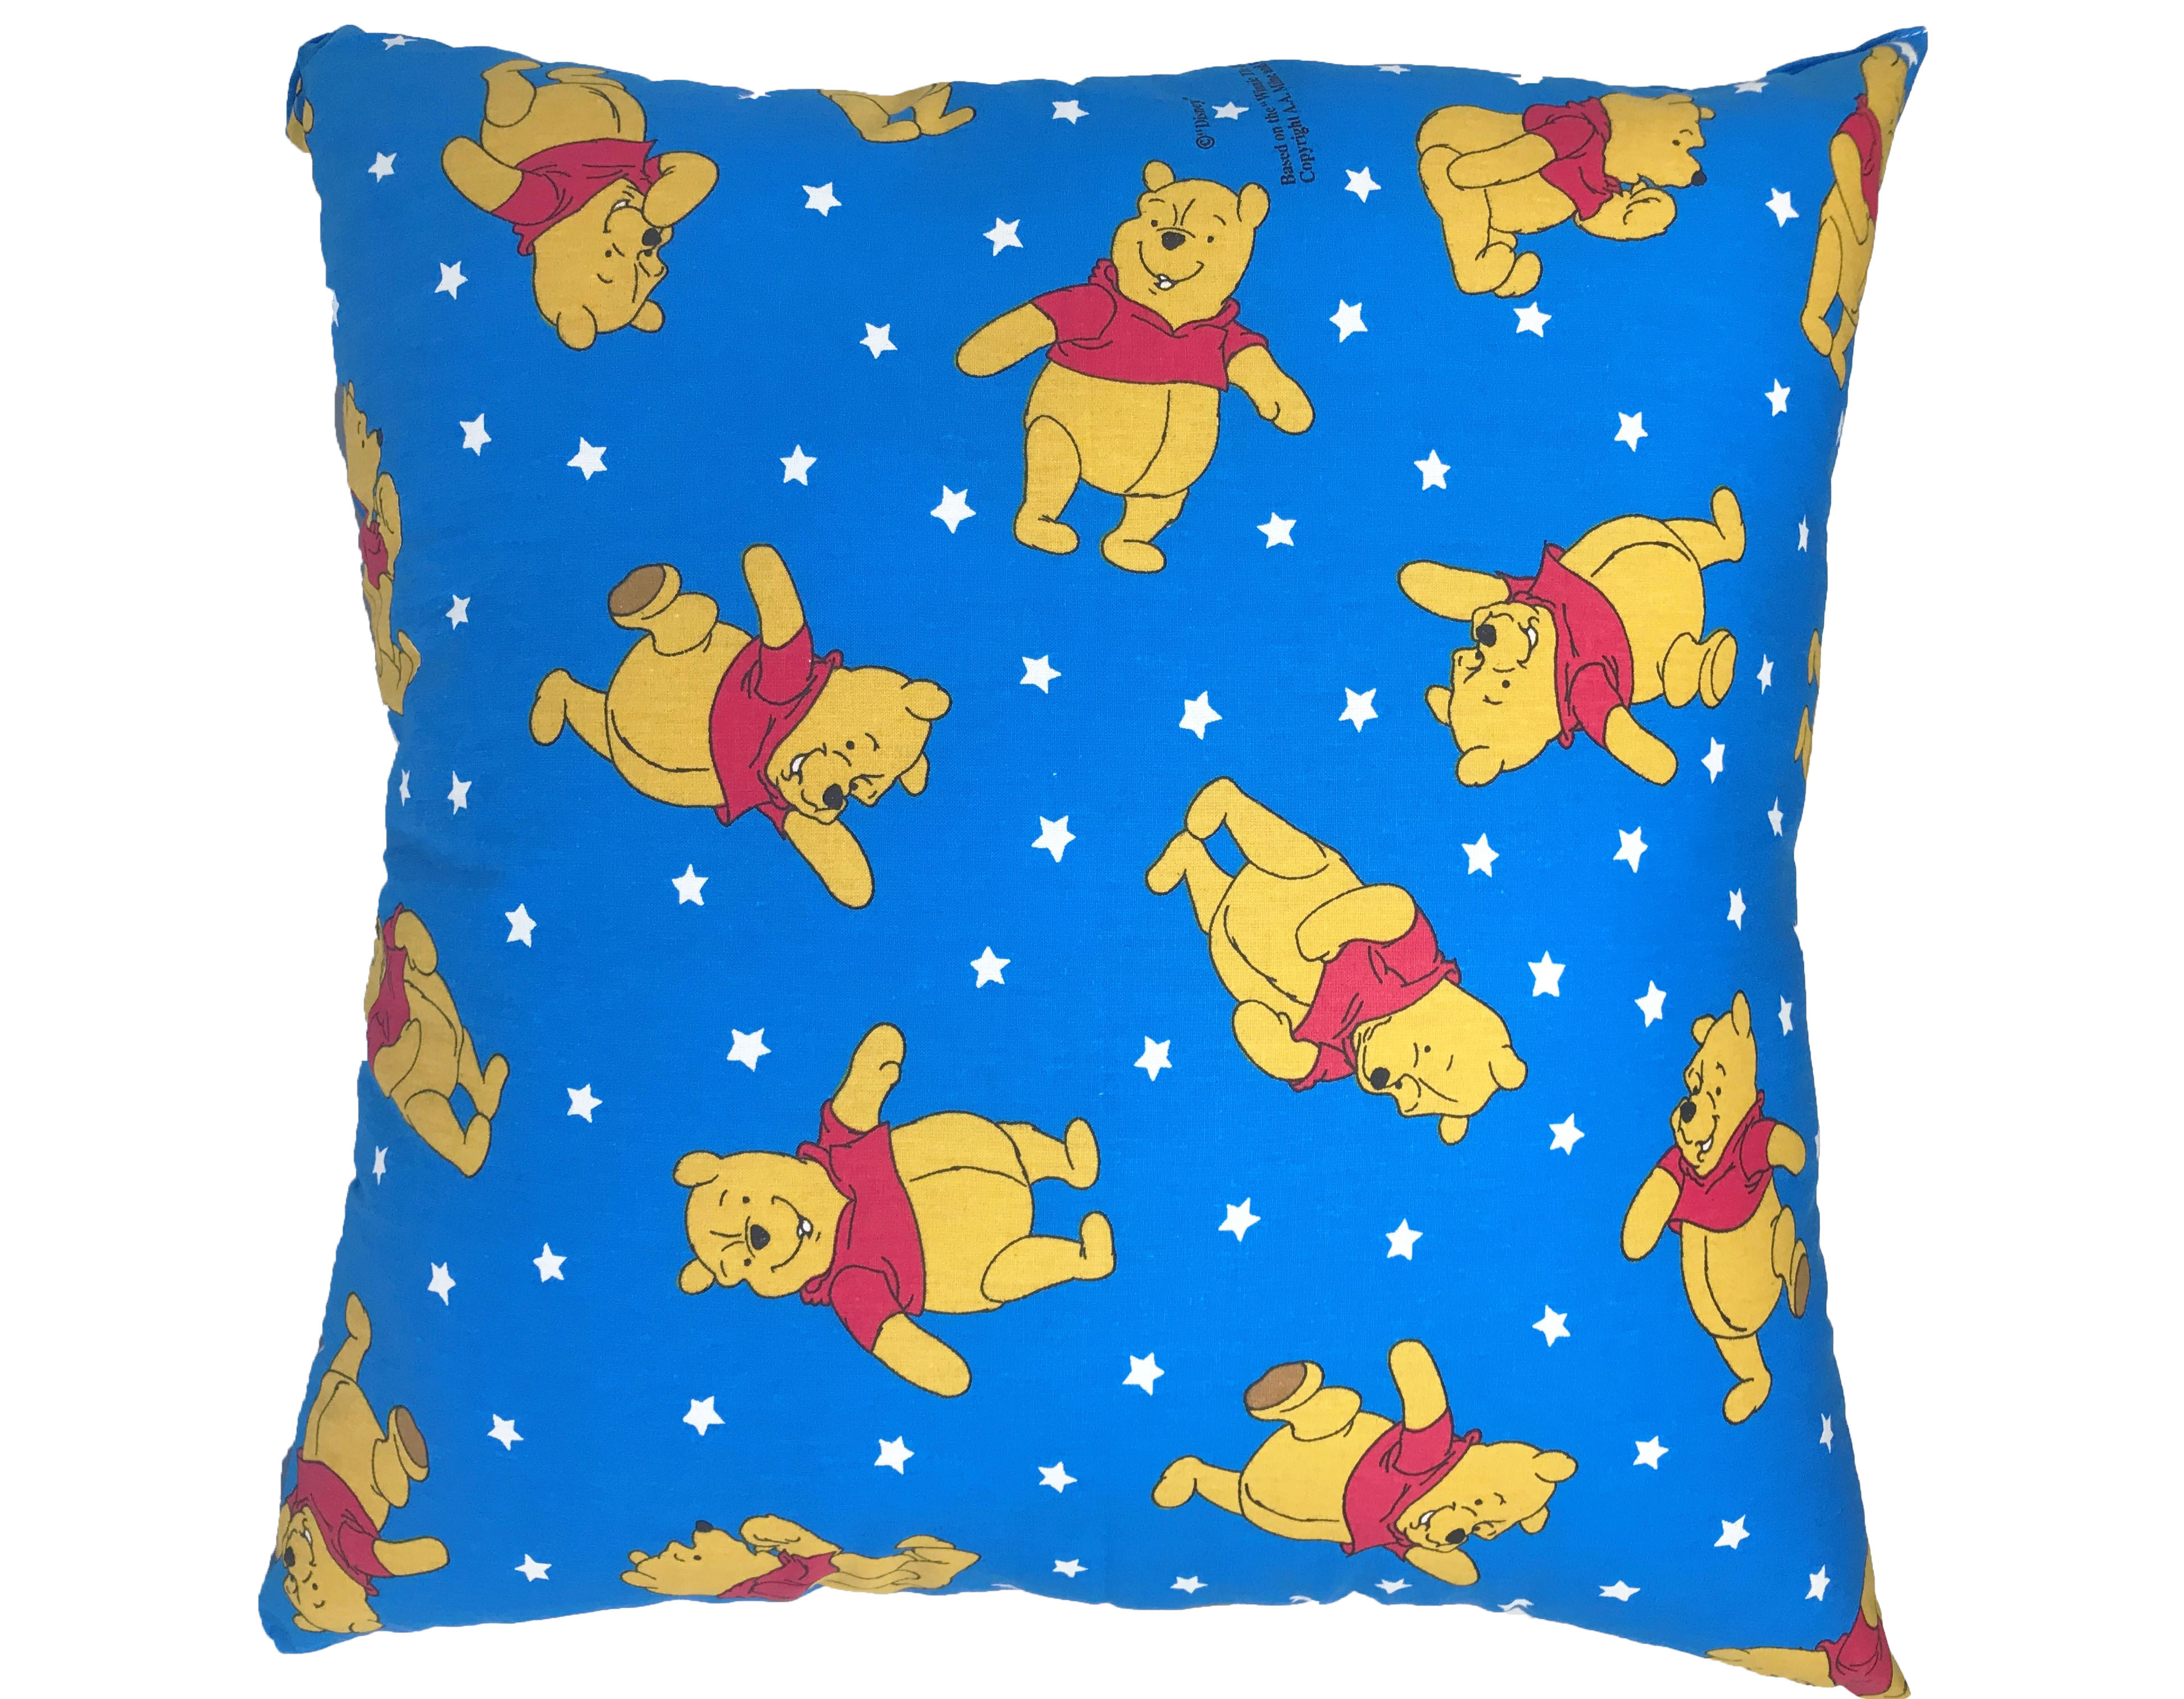 Disney Winnie the Pooh Filled Cushions in Royal Blue